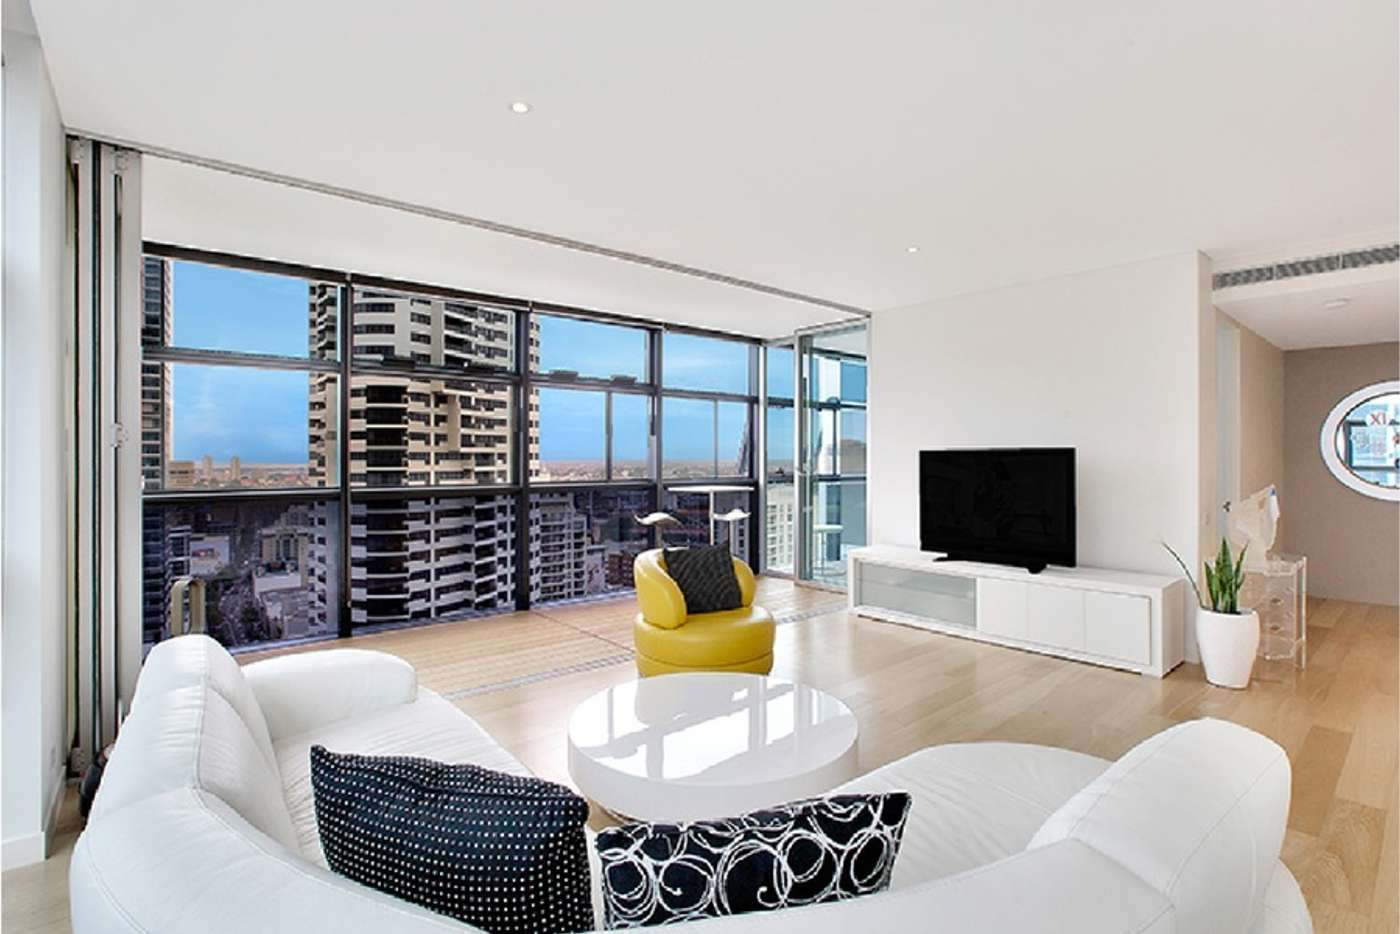 Main view of Homely apartment listing, 3308/101 Bathurst Street, Sydney NSW 2000